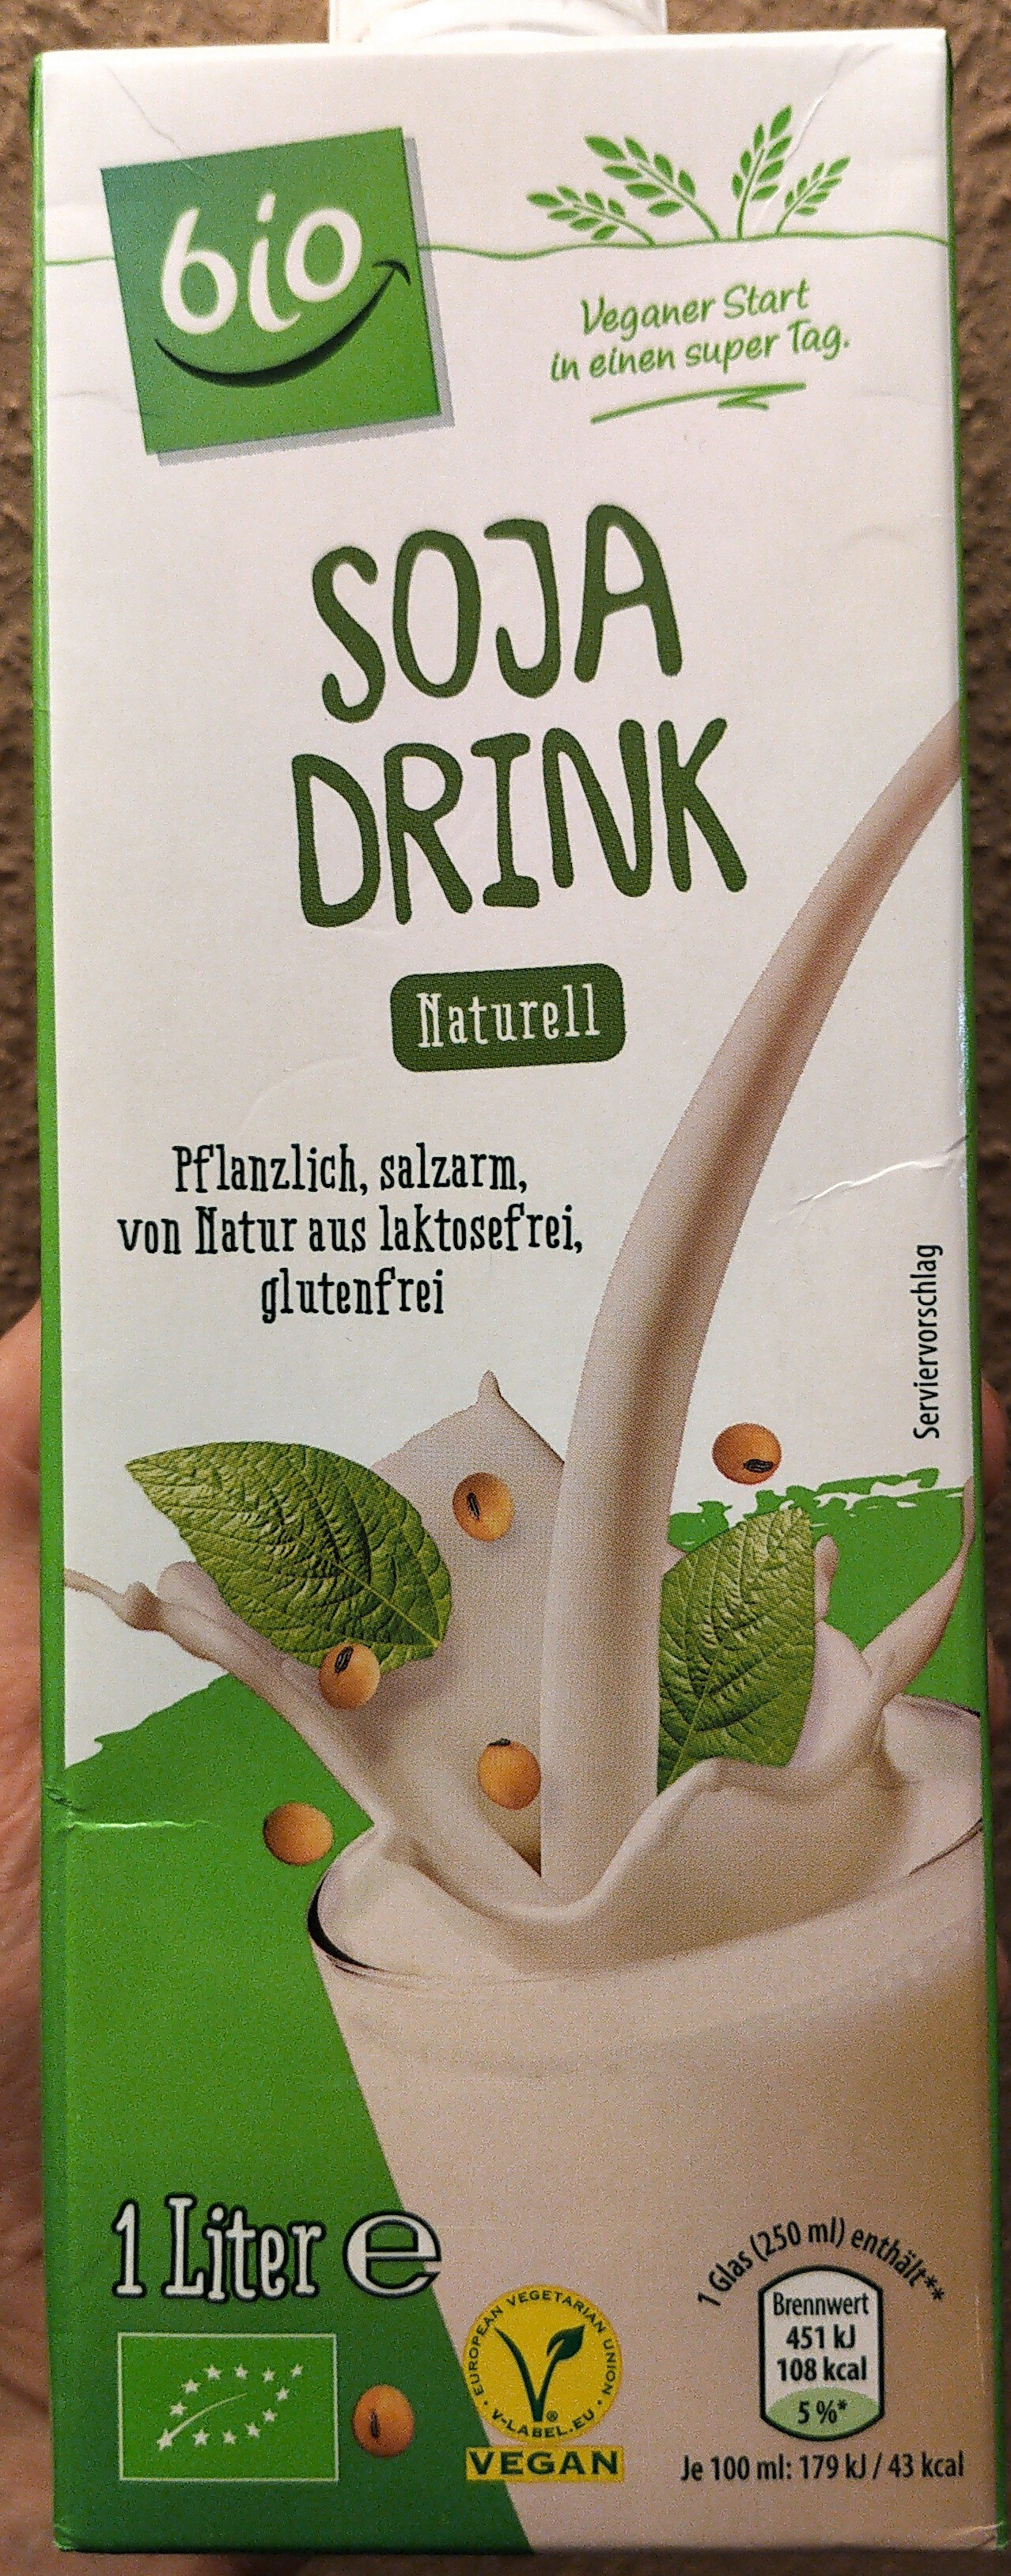 Soja Drink Naturell - Product